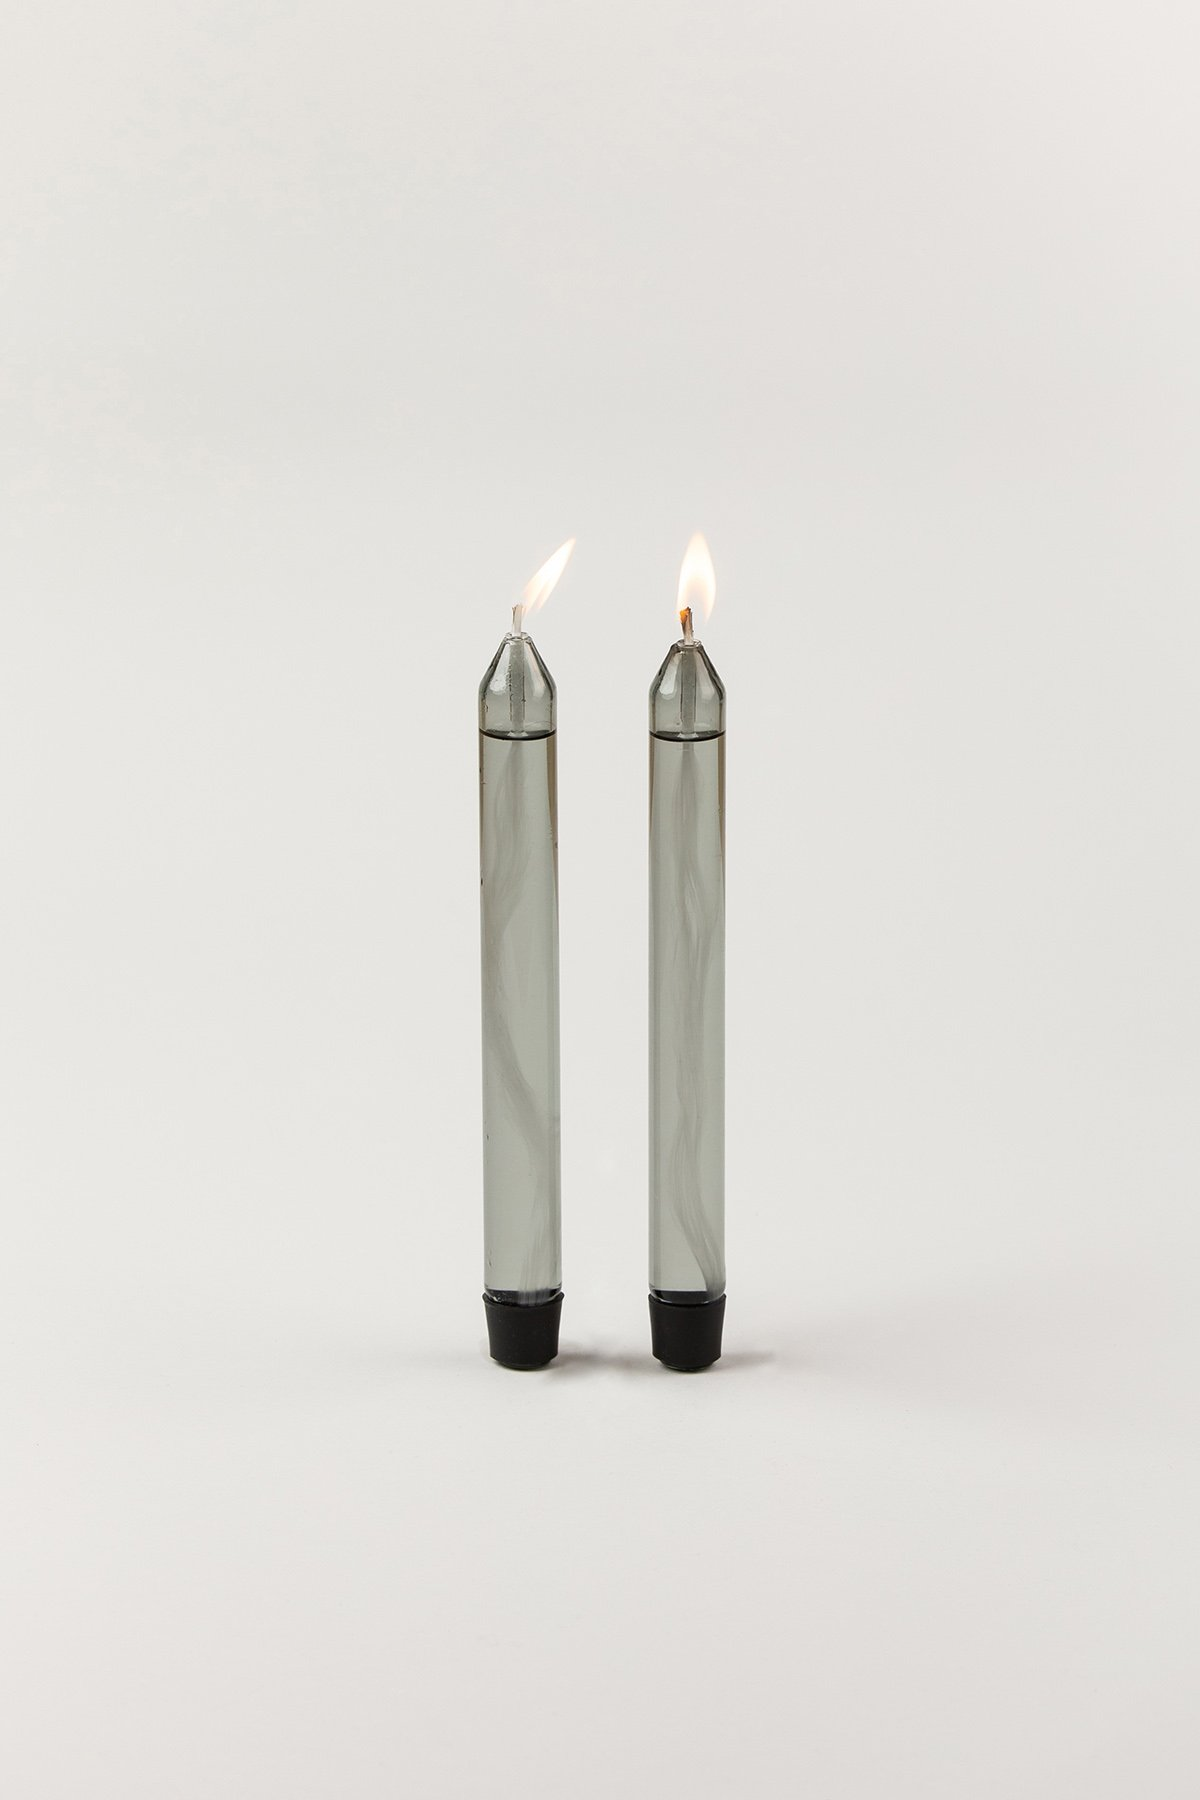 Studio About Glass Candle Oil Smoke 2-pack